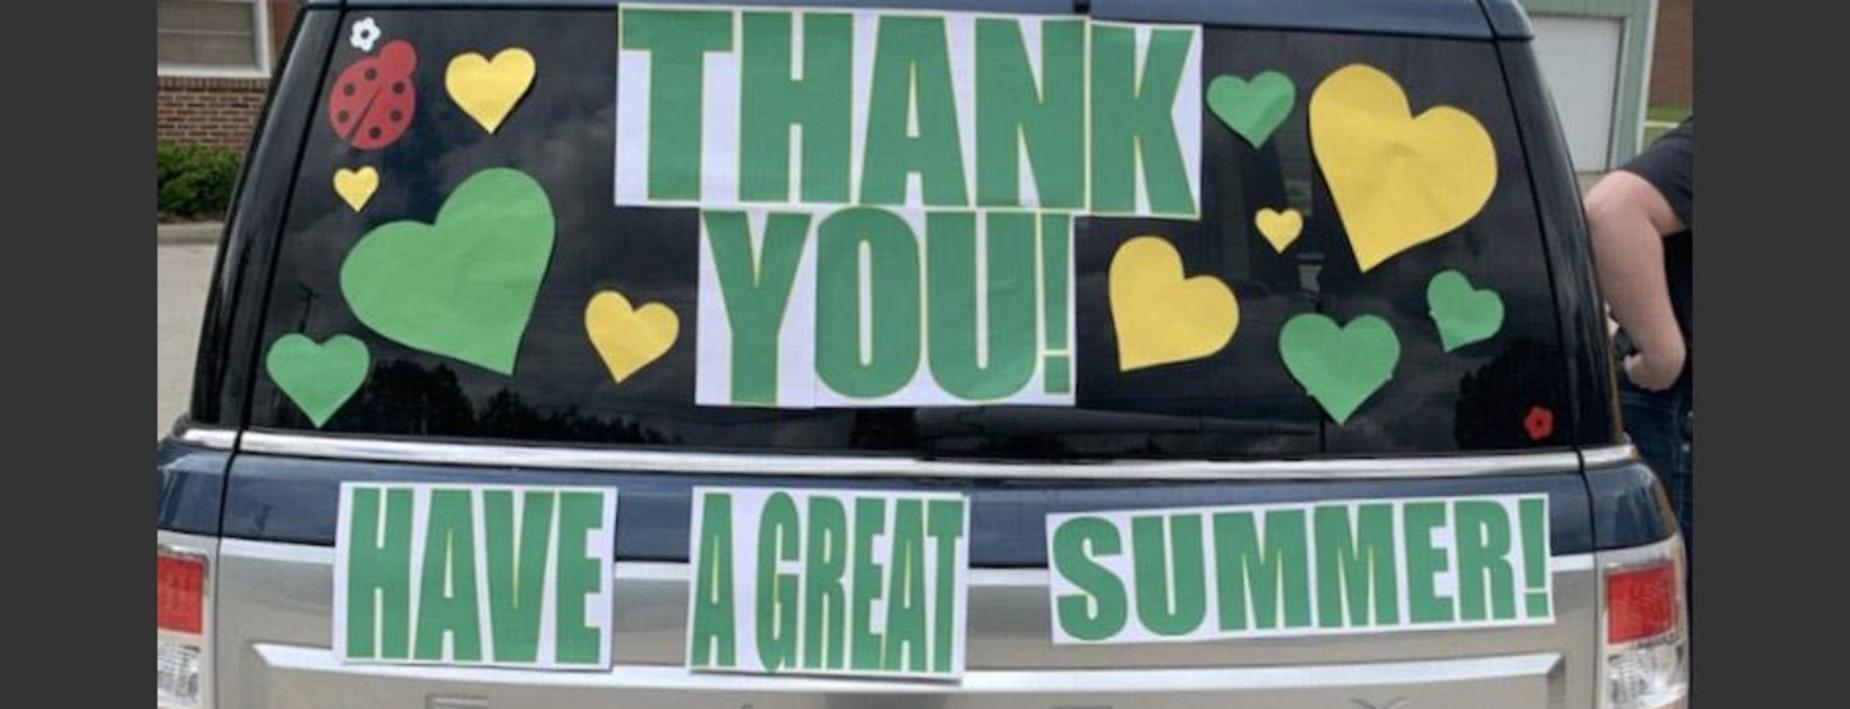 Thank you have a great summer